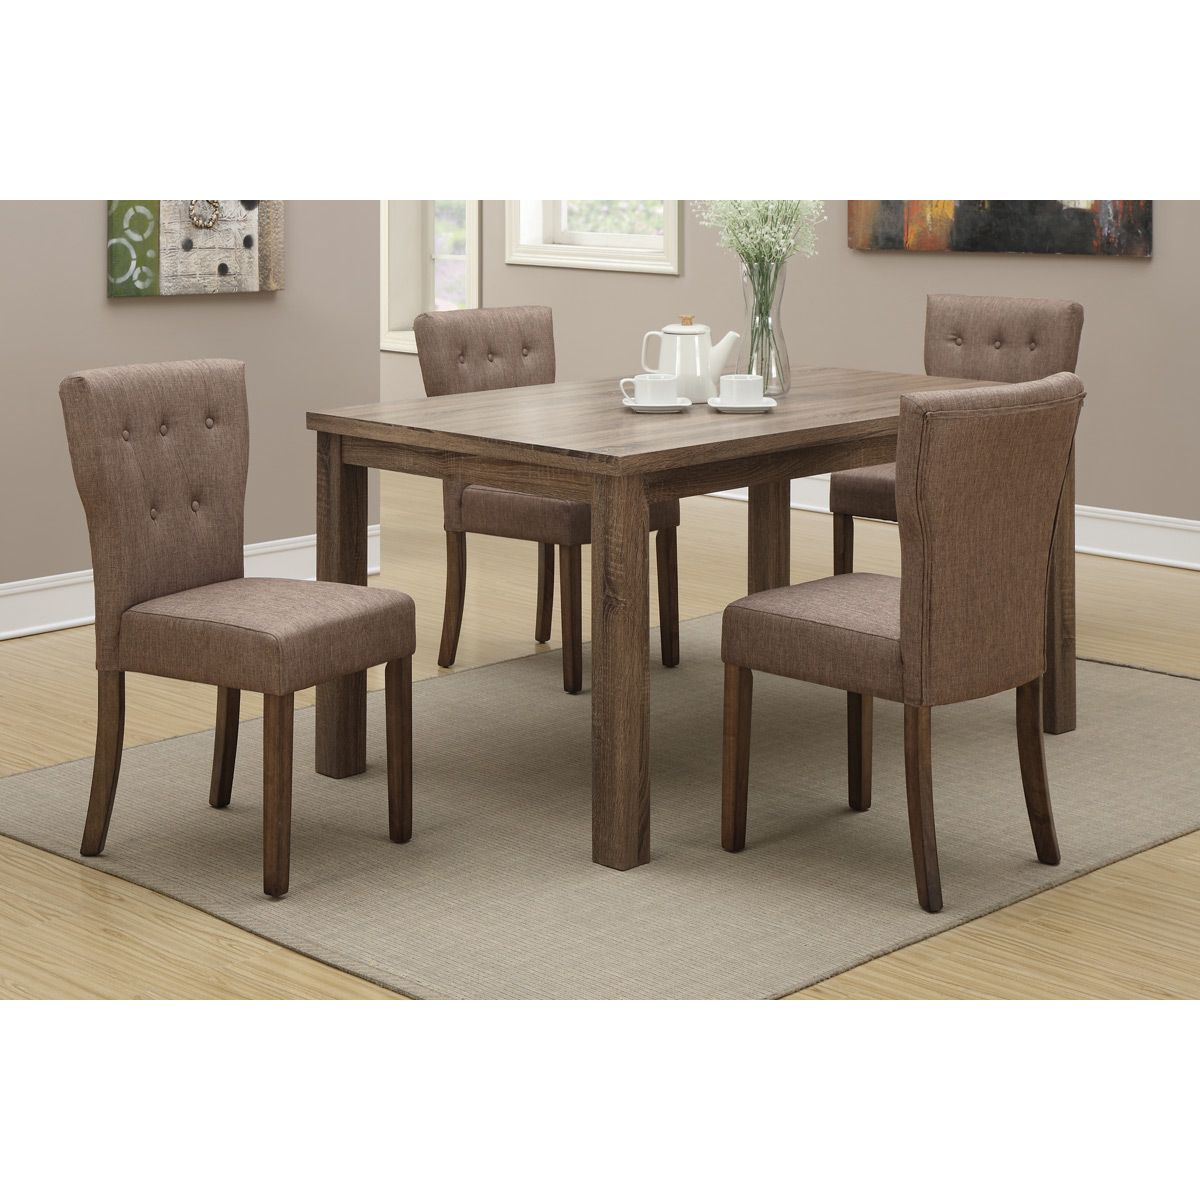 Montrose 5Piece Dining Set  Upholstery Chairs And The O'jays Beauteous Grey Dining Room Sets Decorating Design